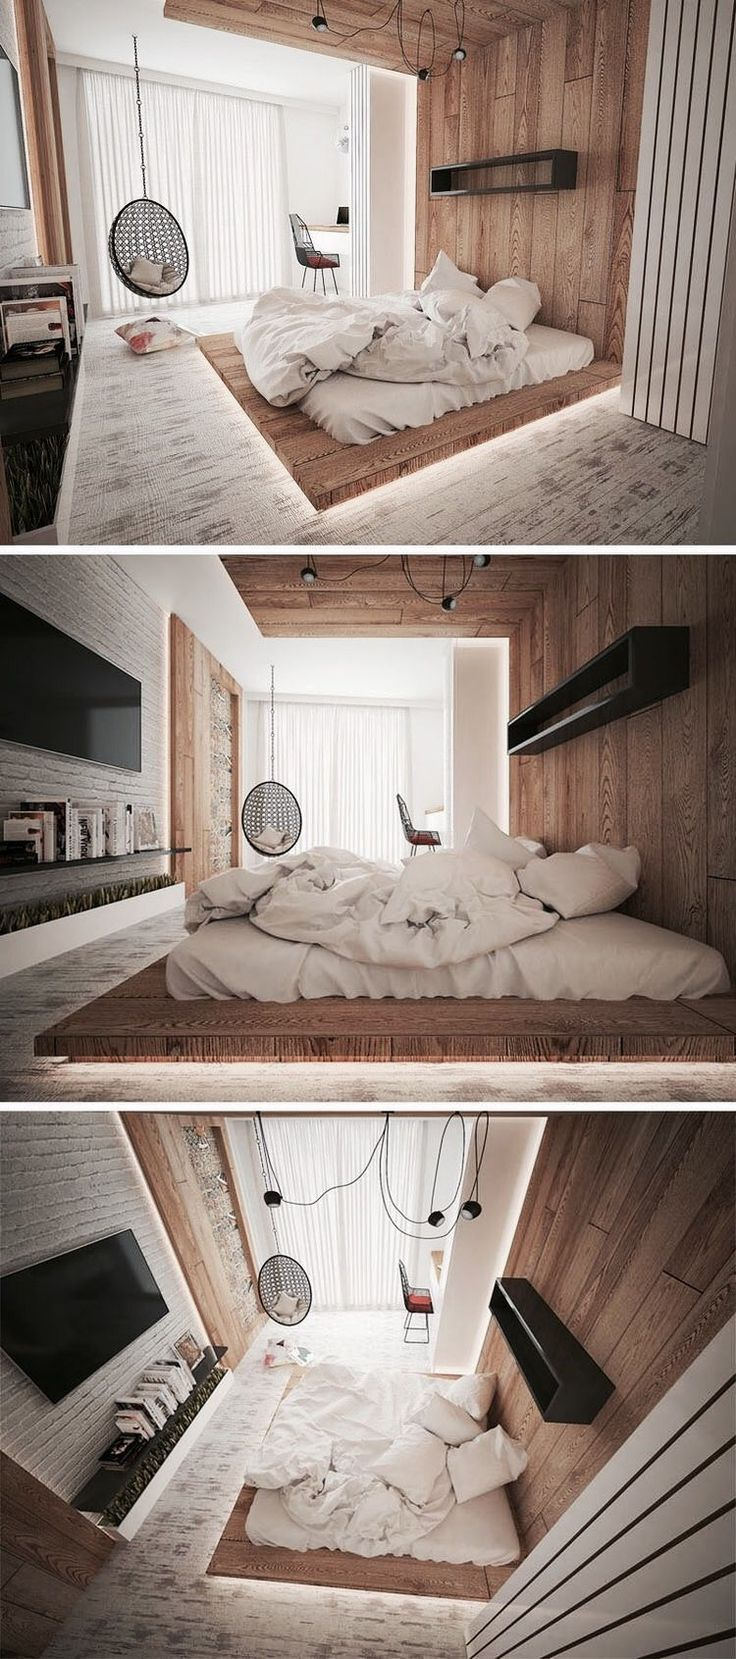 Photo of 6 basic modern bedroom remodel tips you should know #bestbedroomd …